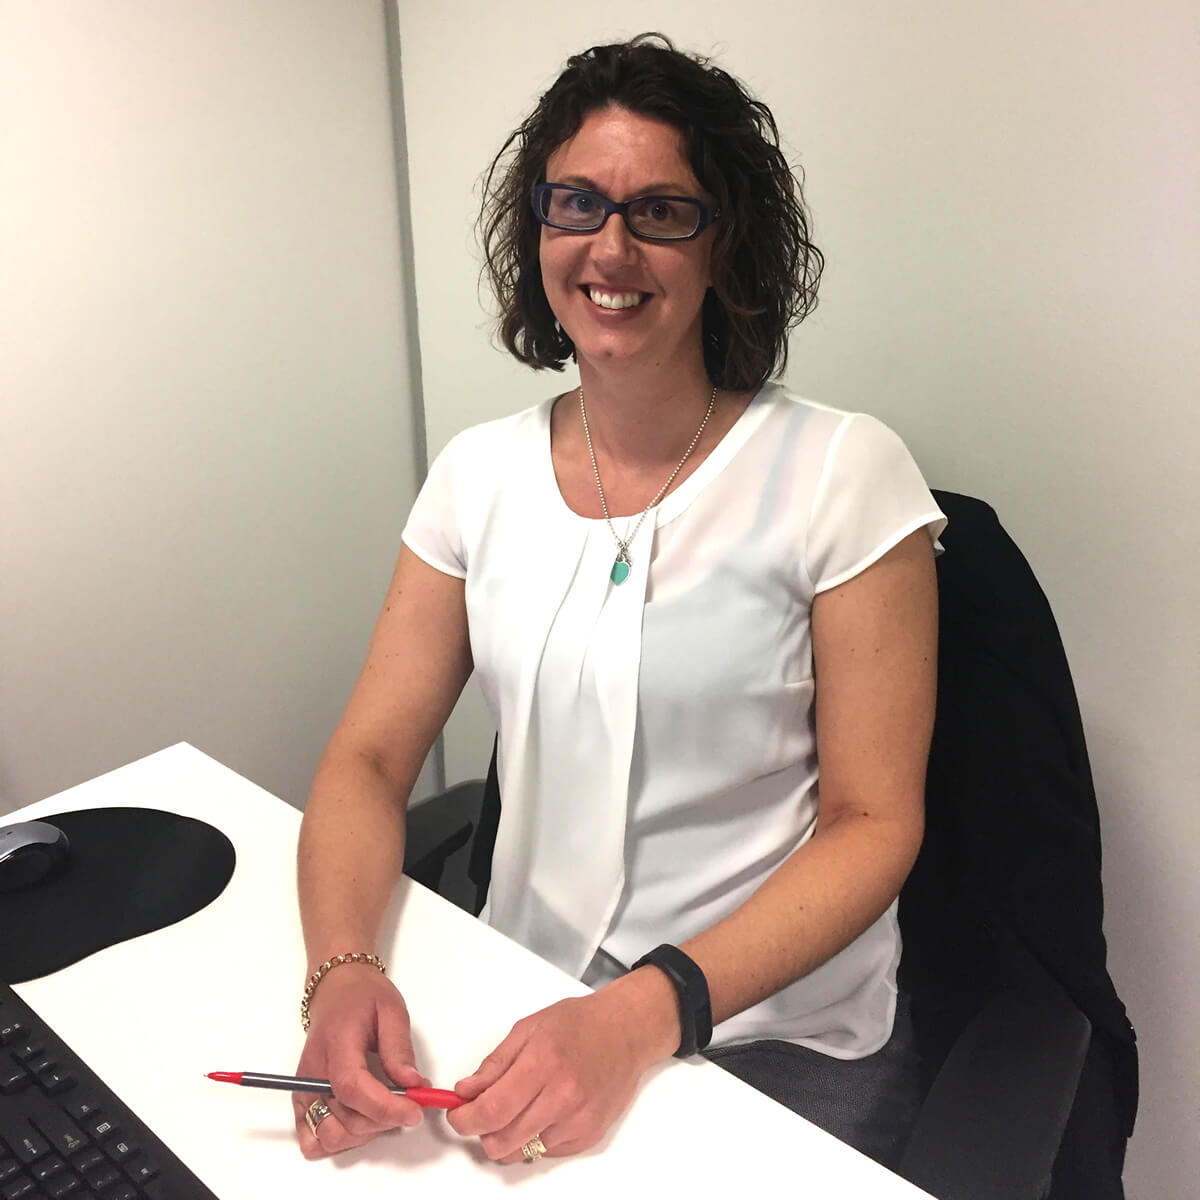 jo-feltham-lease-administrator-commercial-real-estate-melbourne